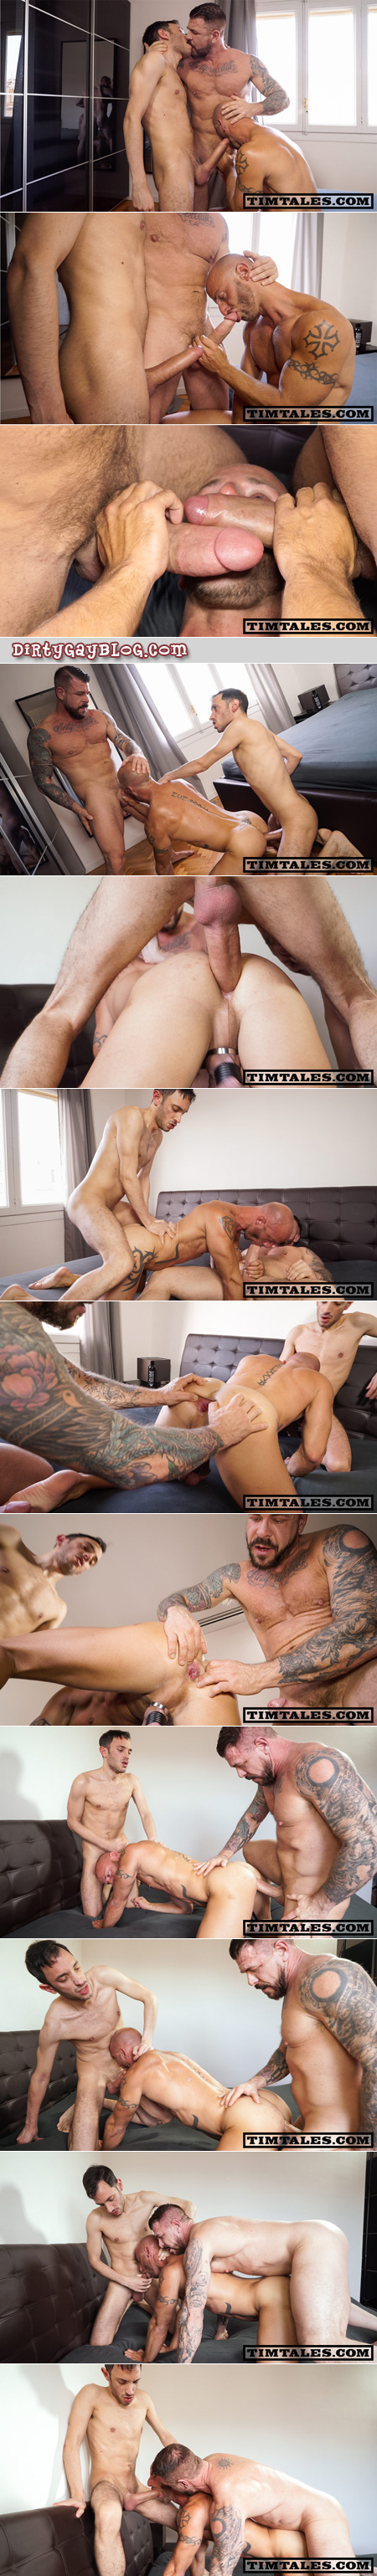 Two very well-hung men takes turns fucking a French muscle bottom bareback.